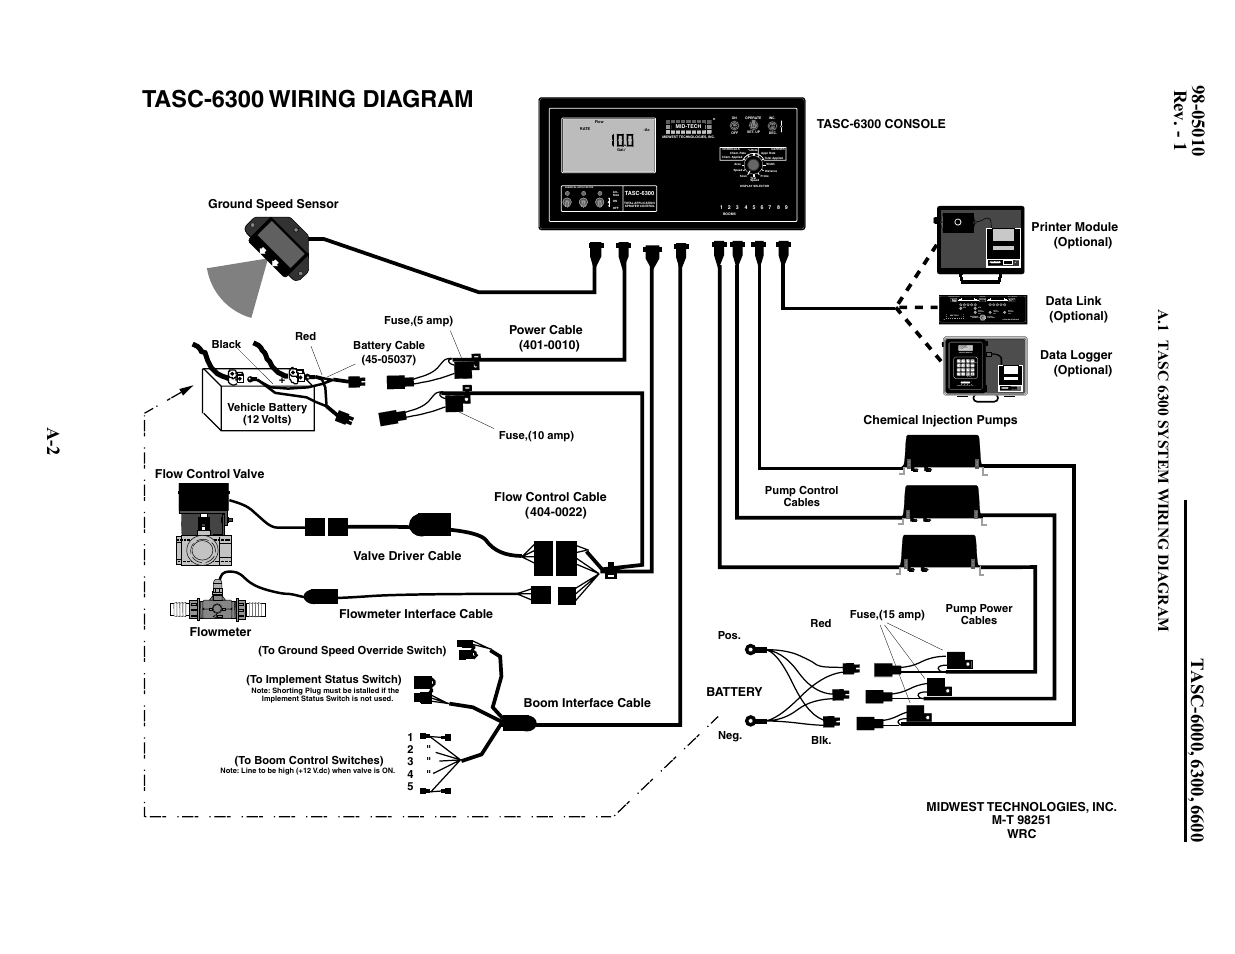 4 wire schematic wiring for 4 wire ls wiring diagram for a ls swap tasc-6300 wiring diagram | teejet tasc-6600 user manual ... #13